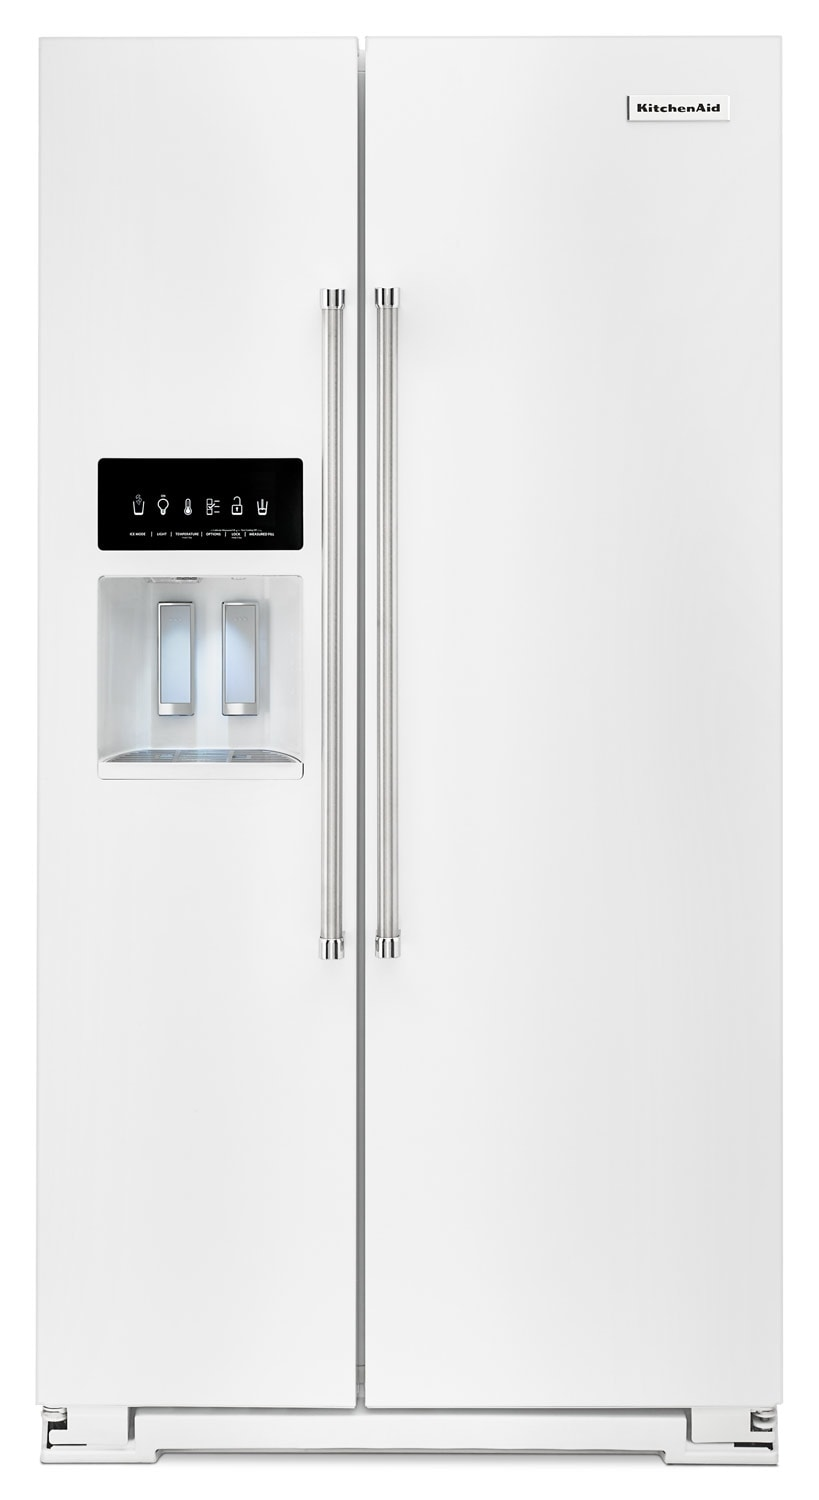 Refrigerators and Freezers - KitchenAid 24.8 Cu. Ft. Standard Depth Side-by-Side Refrigerator – White